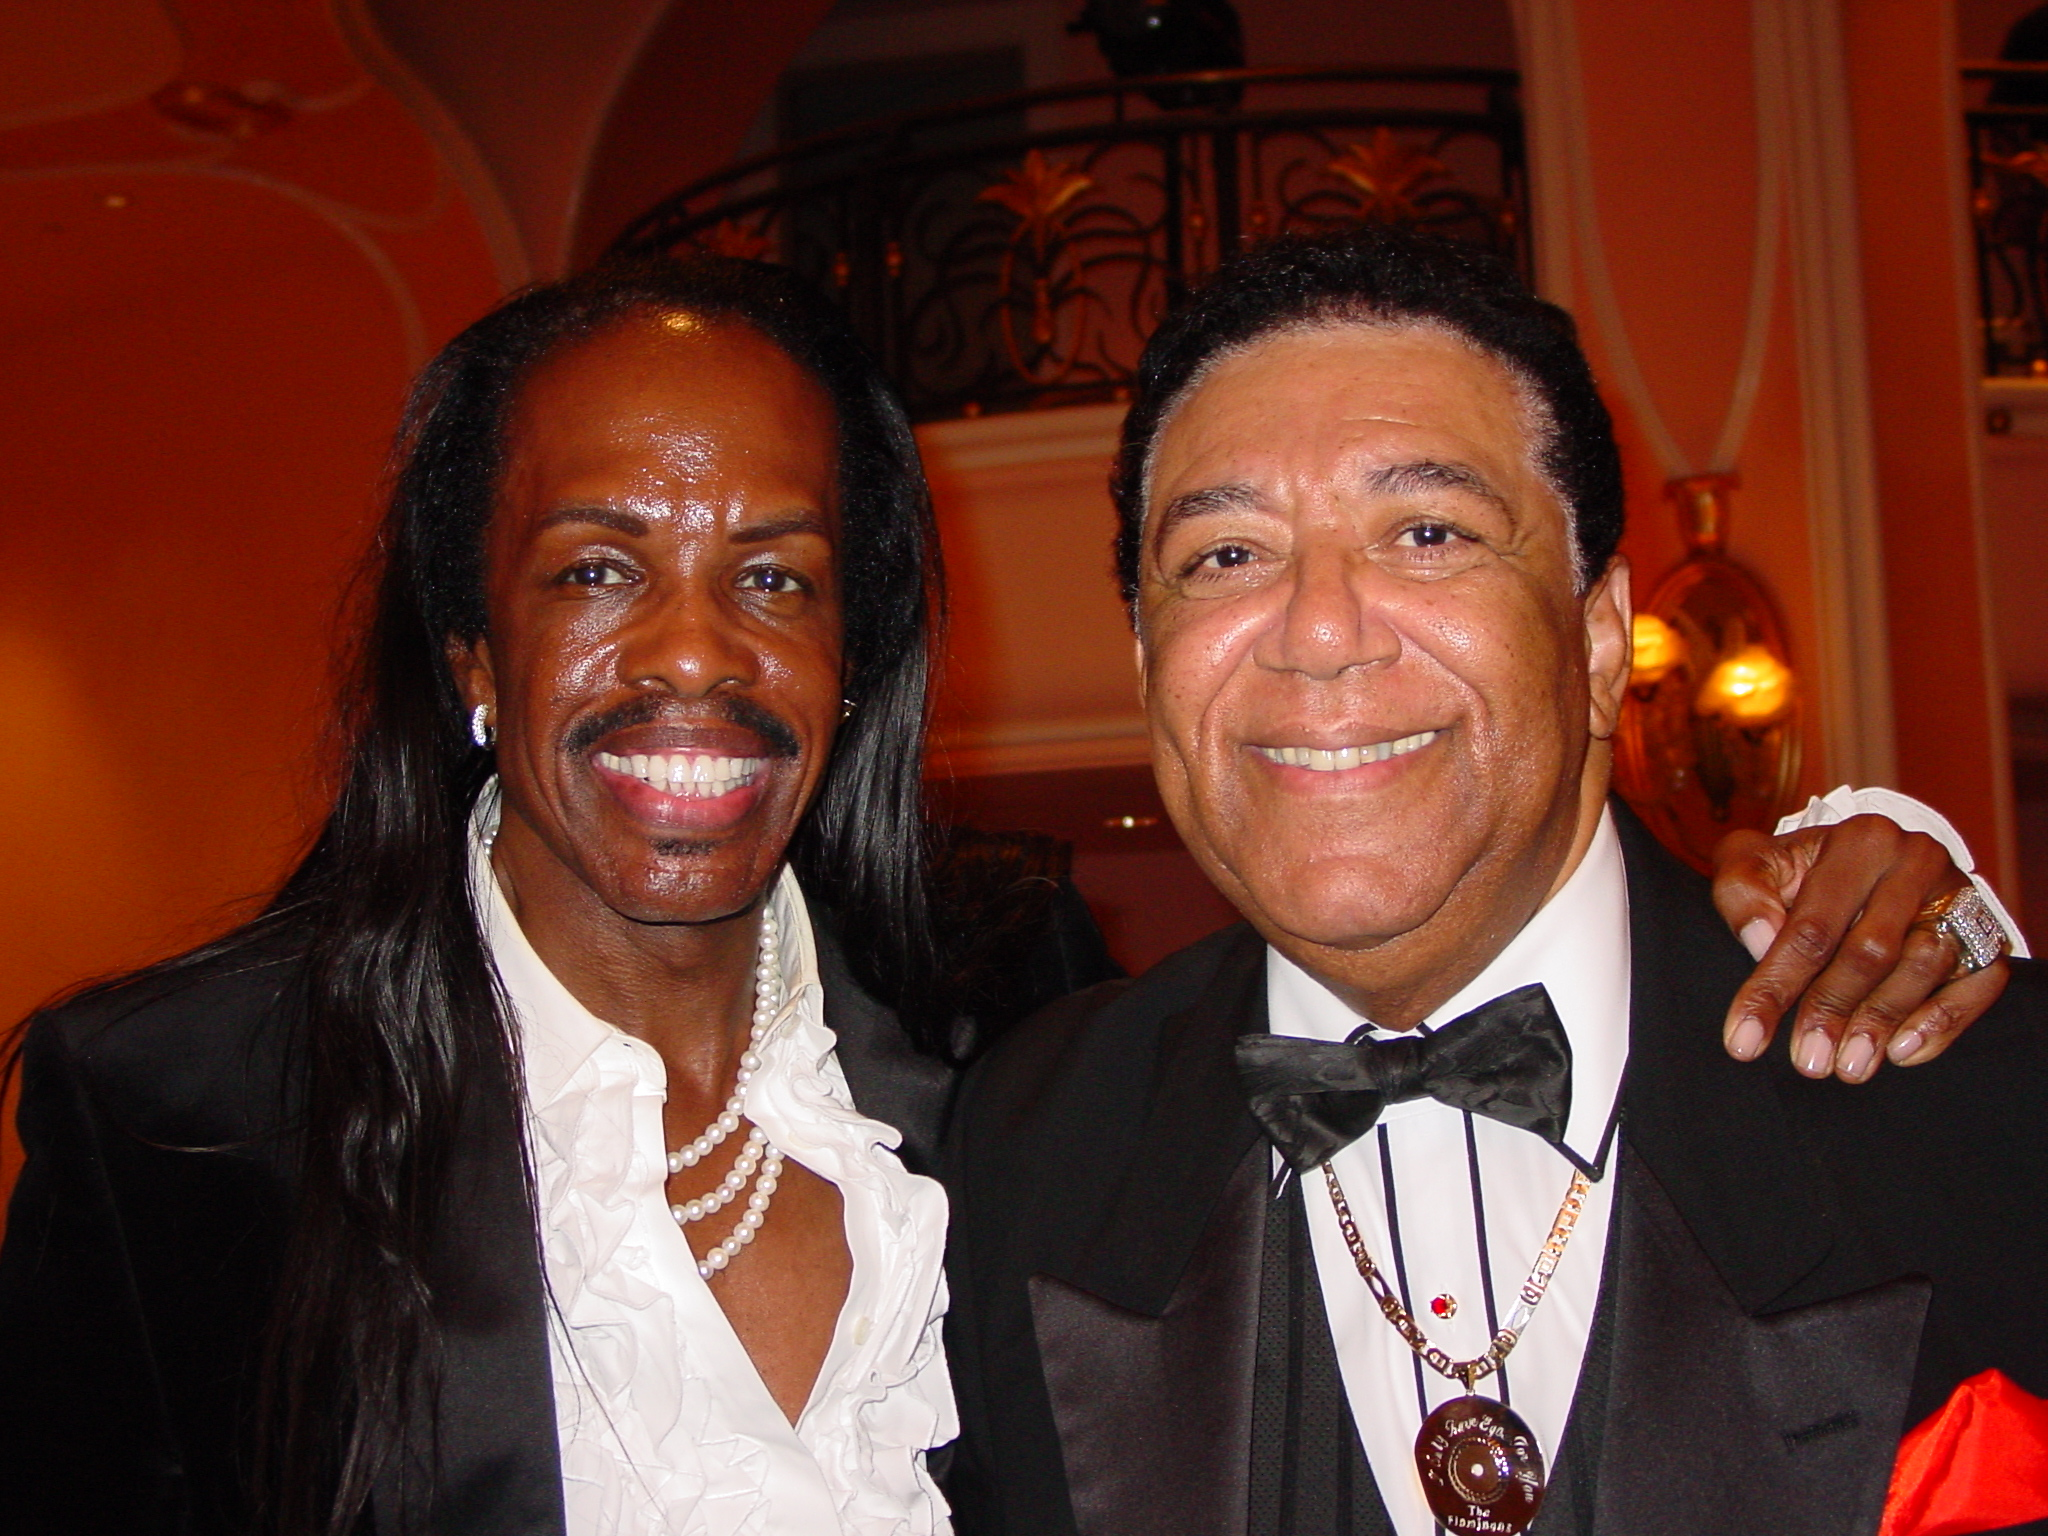 Verdine White of Earth, Wind & Fire